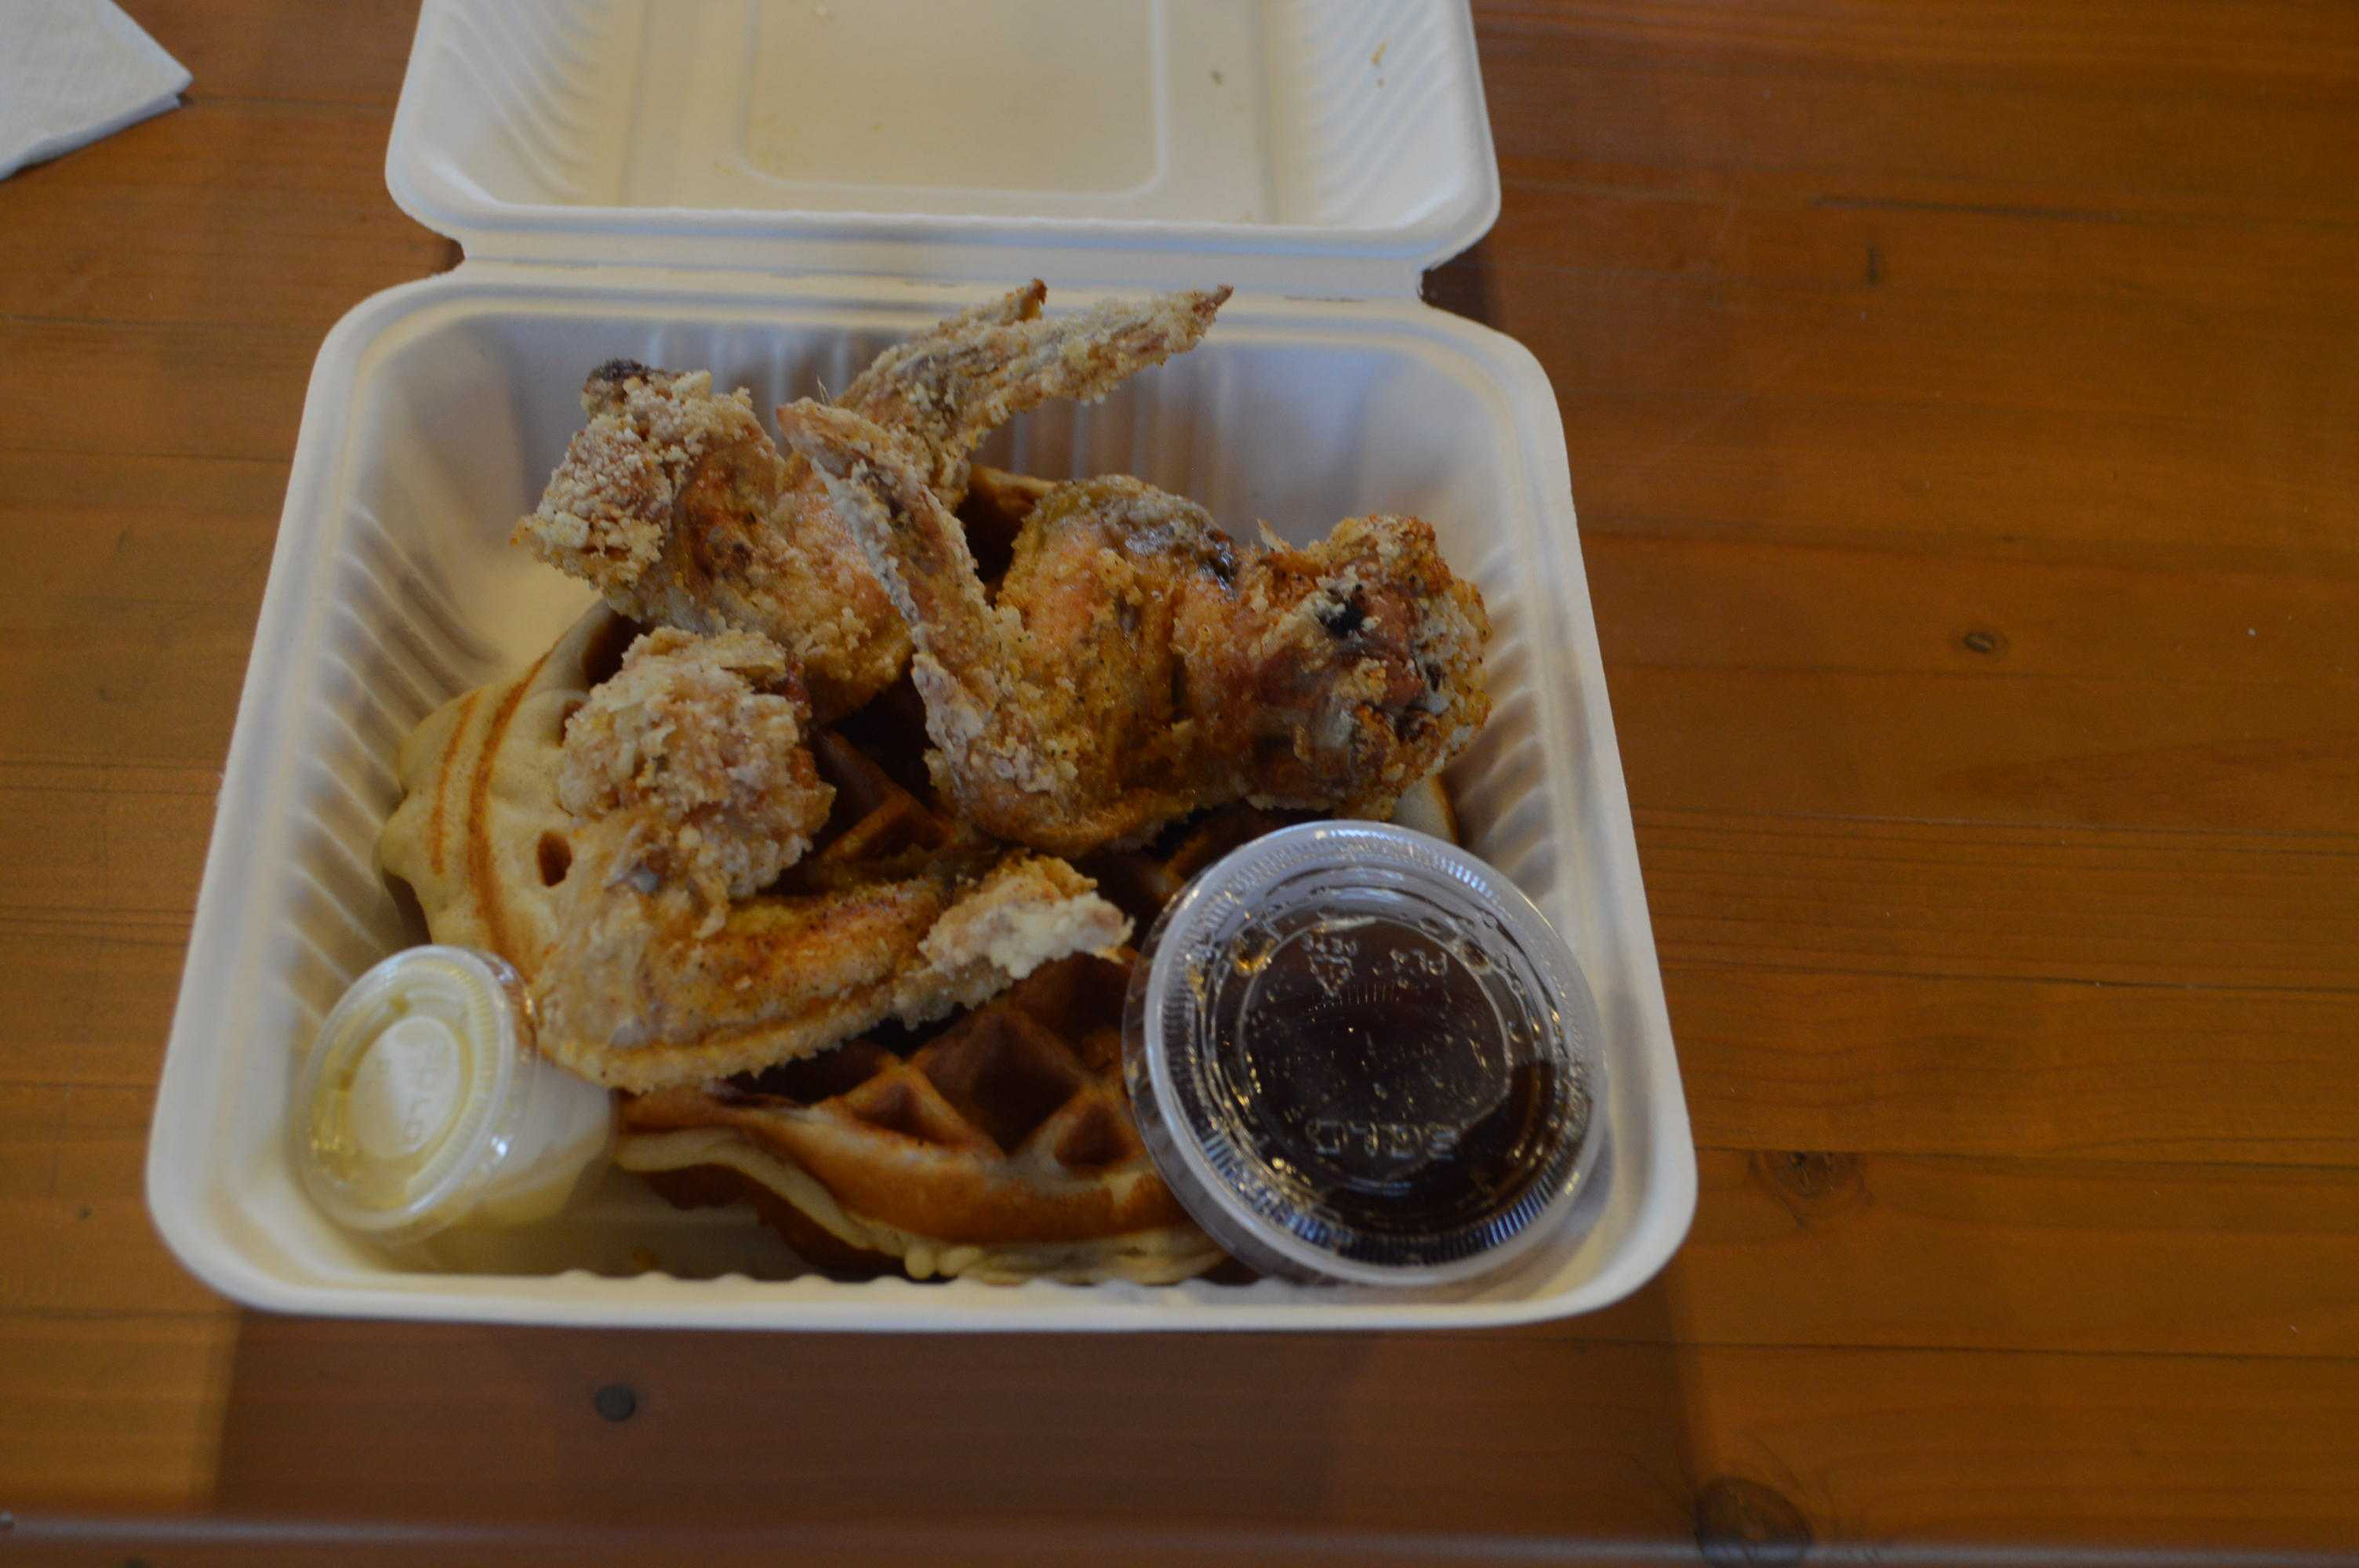 Chicken+and+waffles+from+the+Kickin%27+Chicken+Wings+cart